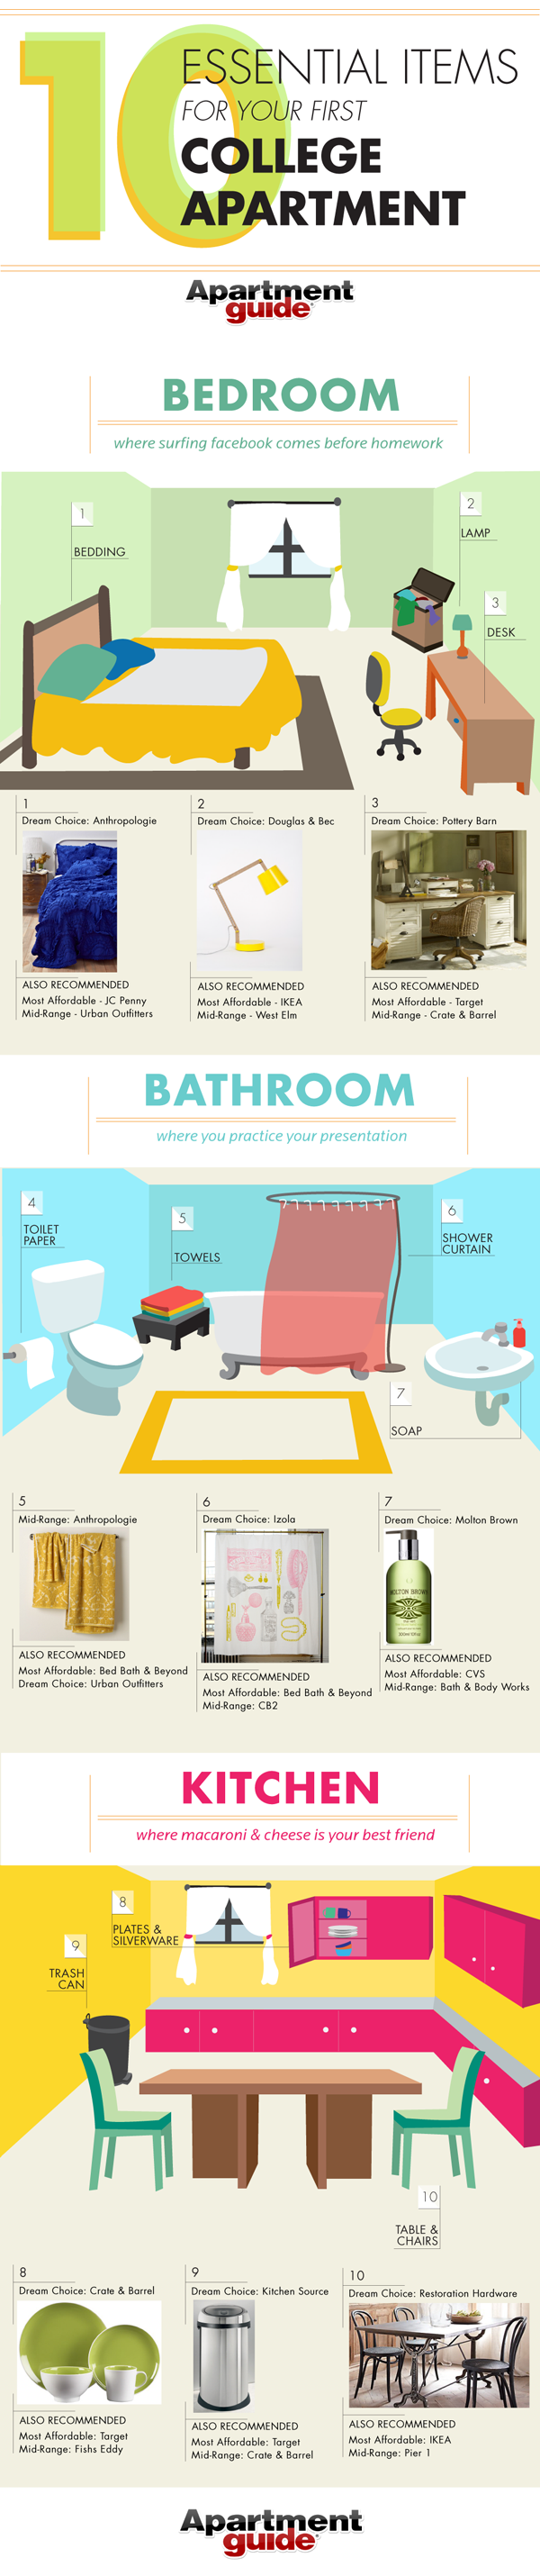 10 Must Haves For Your First College Apartment